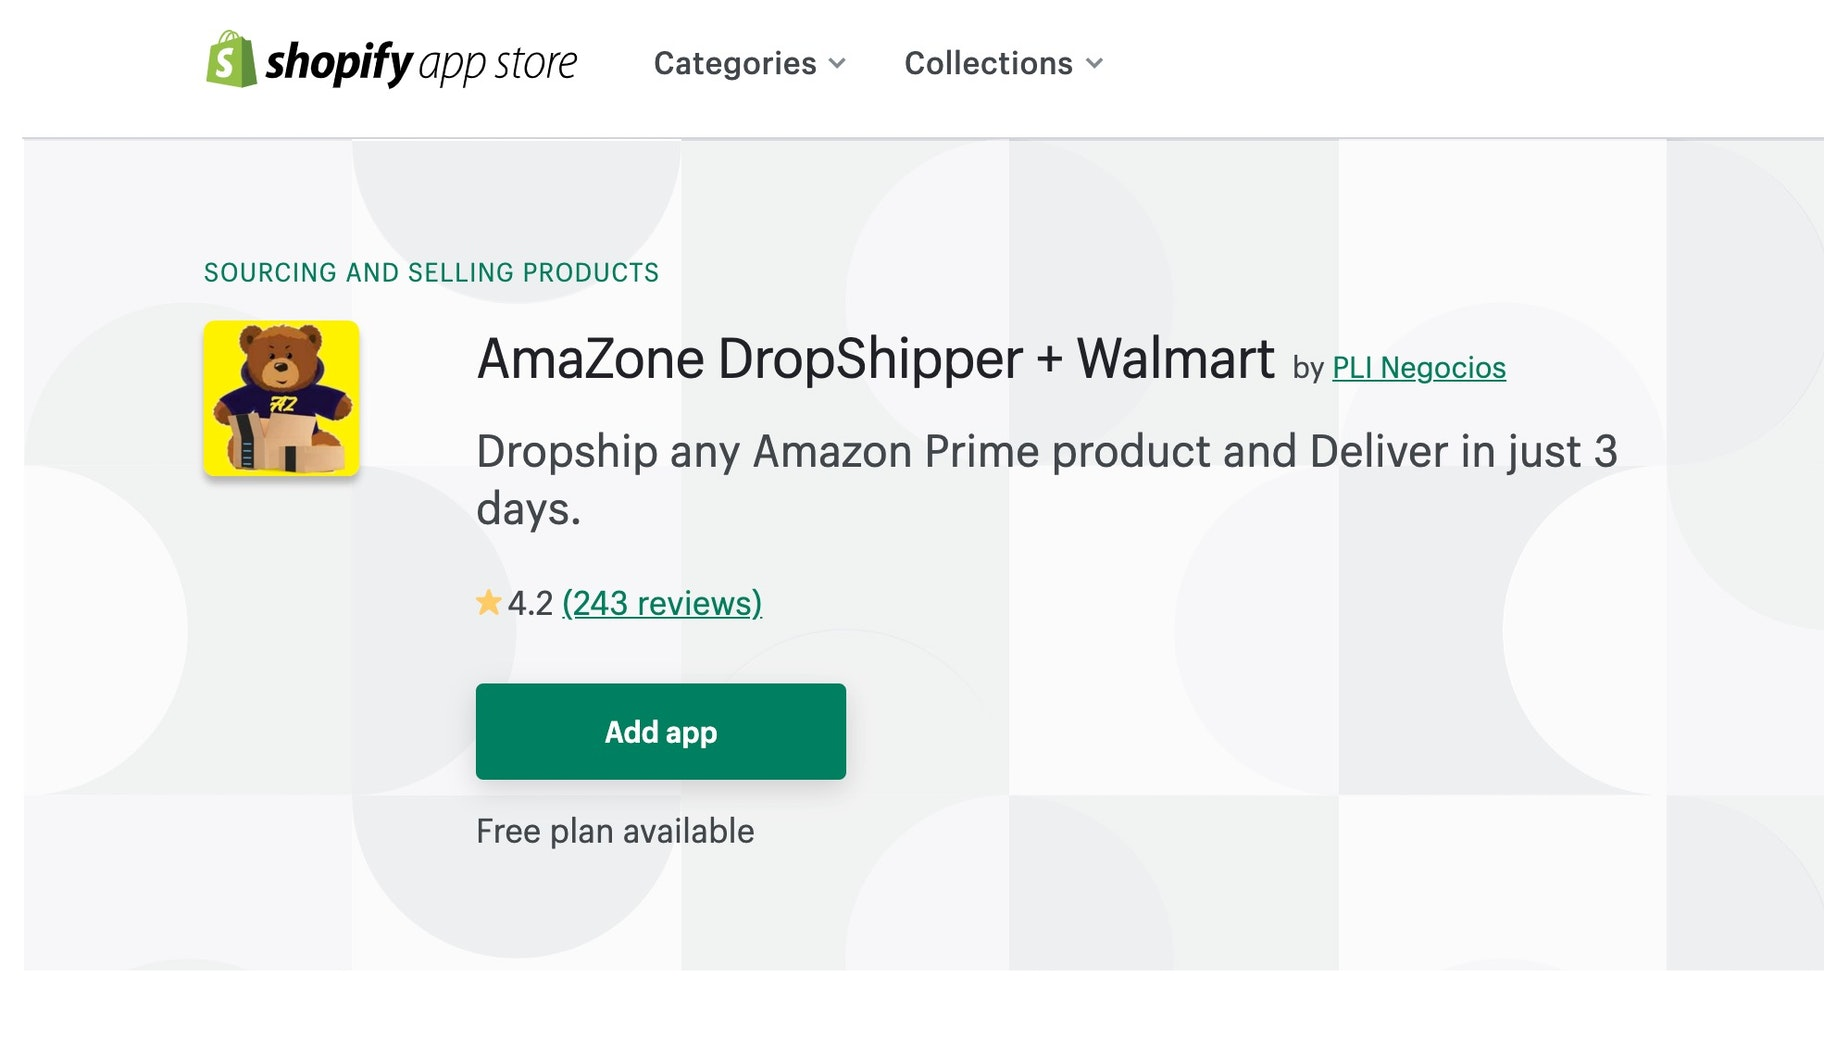 Dropshipping from Walmart to Shopify